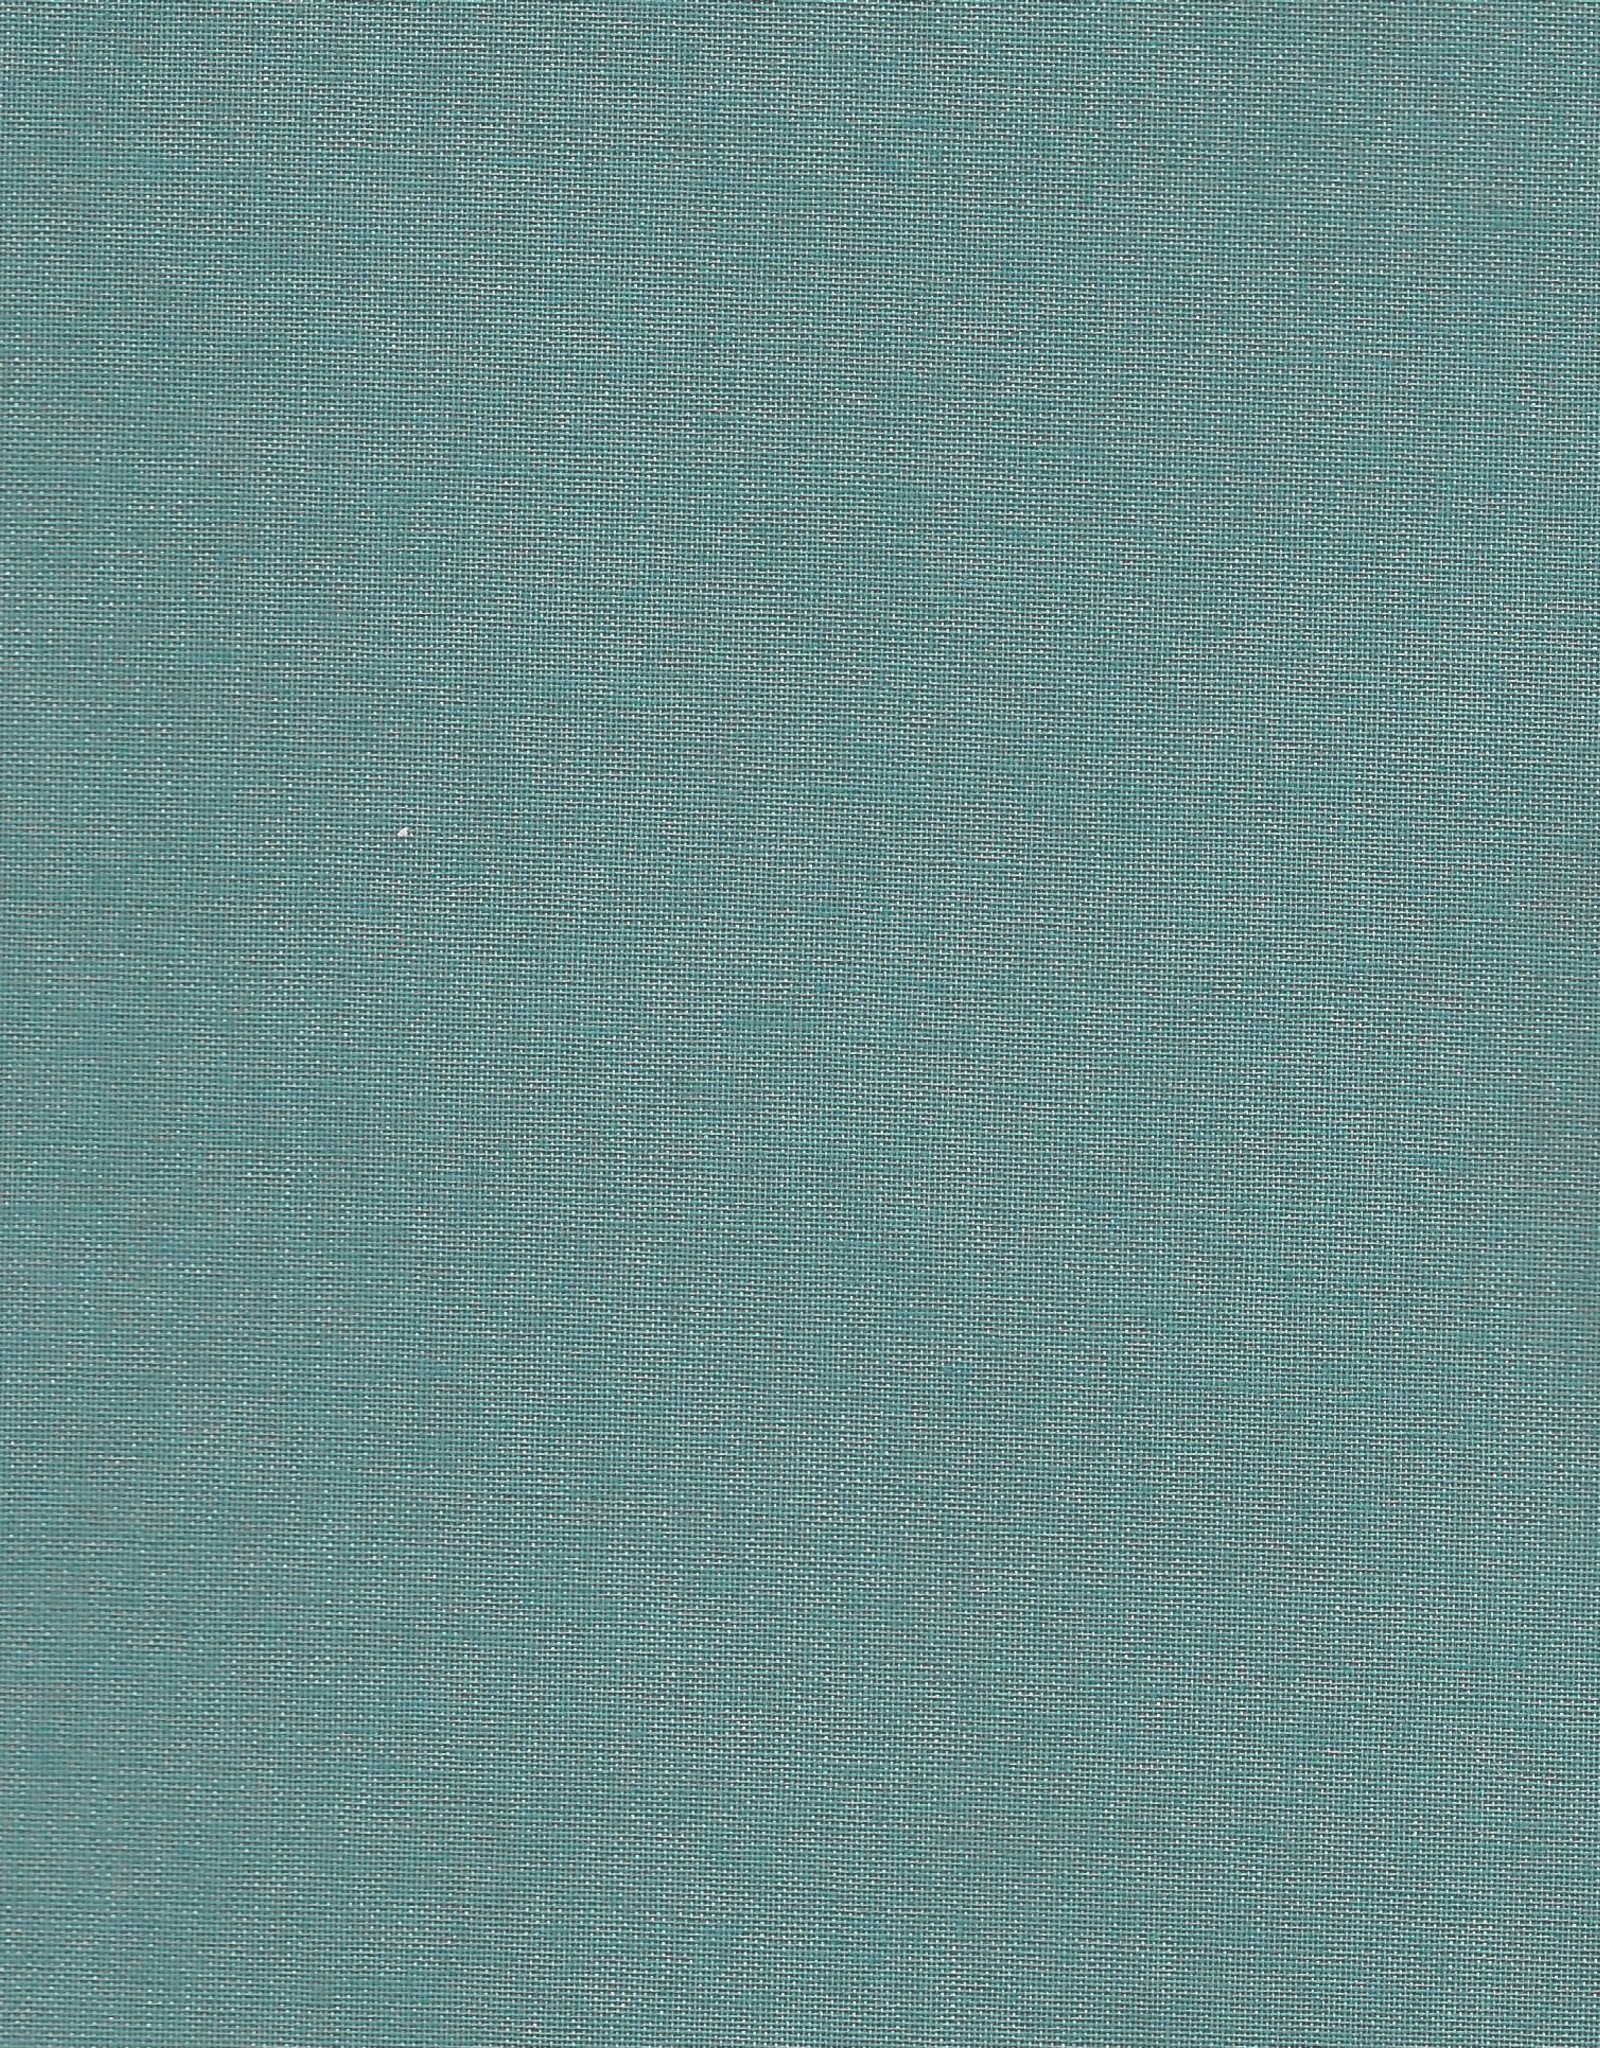 """Book Cloth Teal, 17"""" x 19"""", 1 Sheet, Acid-Free, 100% Rayon, Paper Backed"""